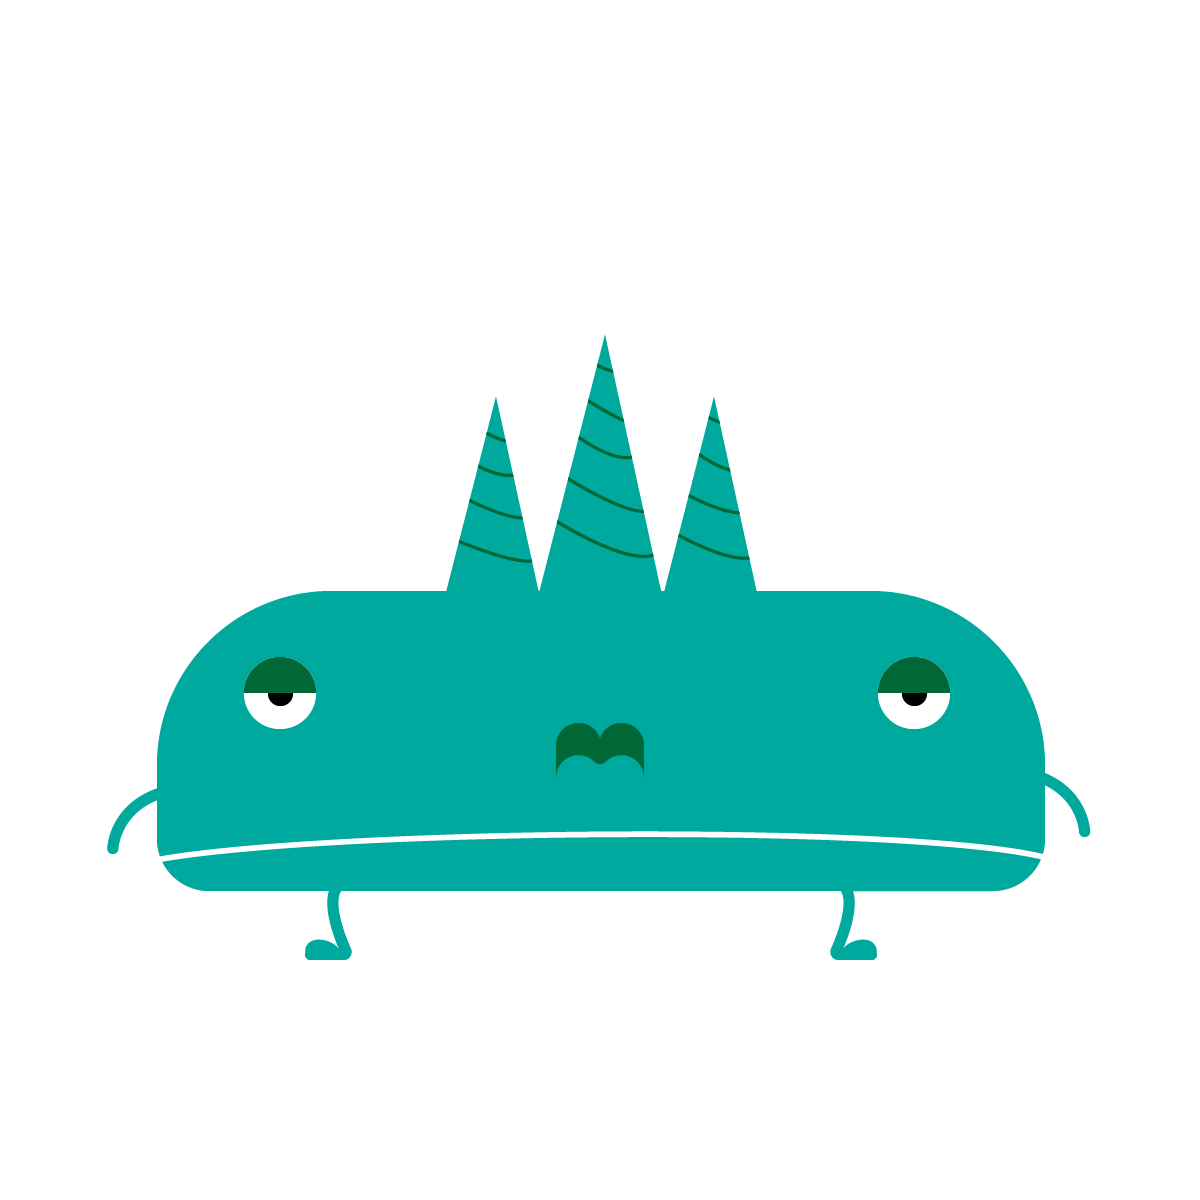 Alien #2 made with Illustrator